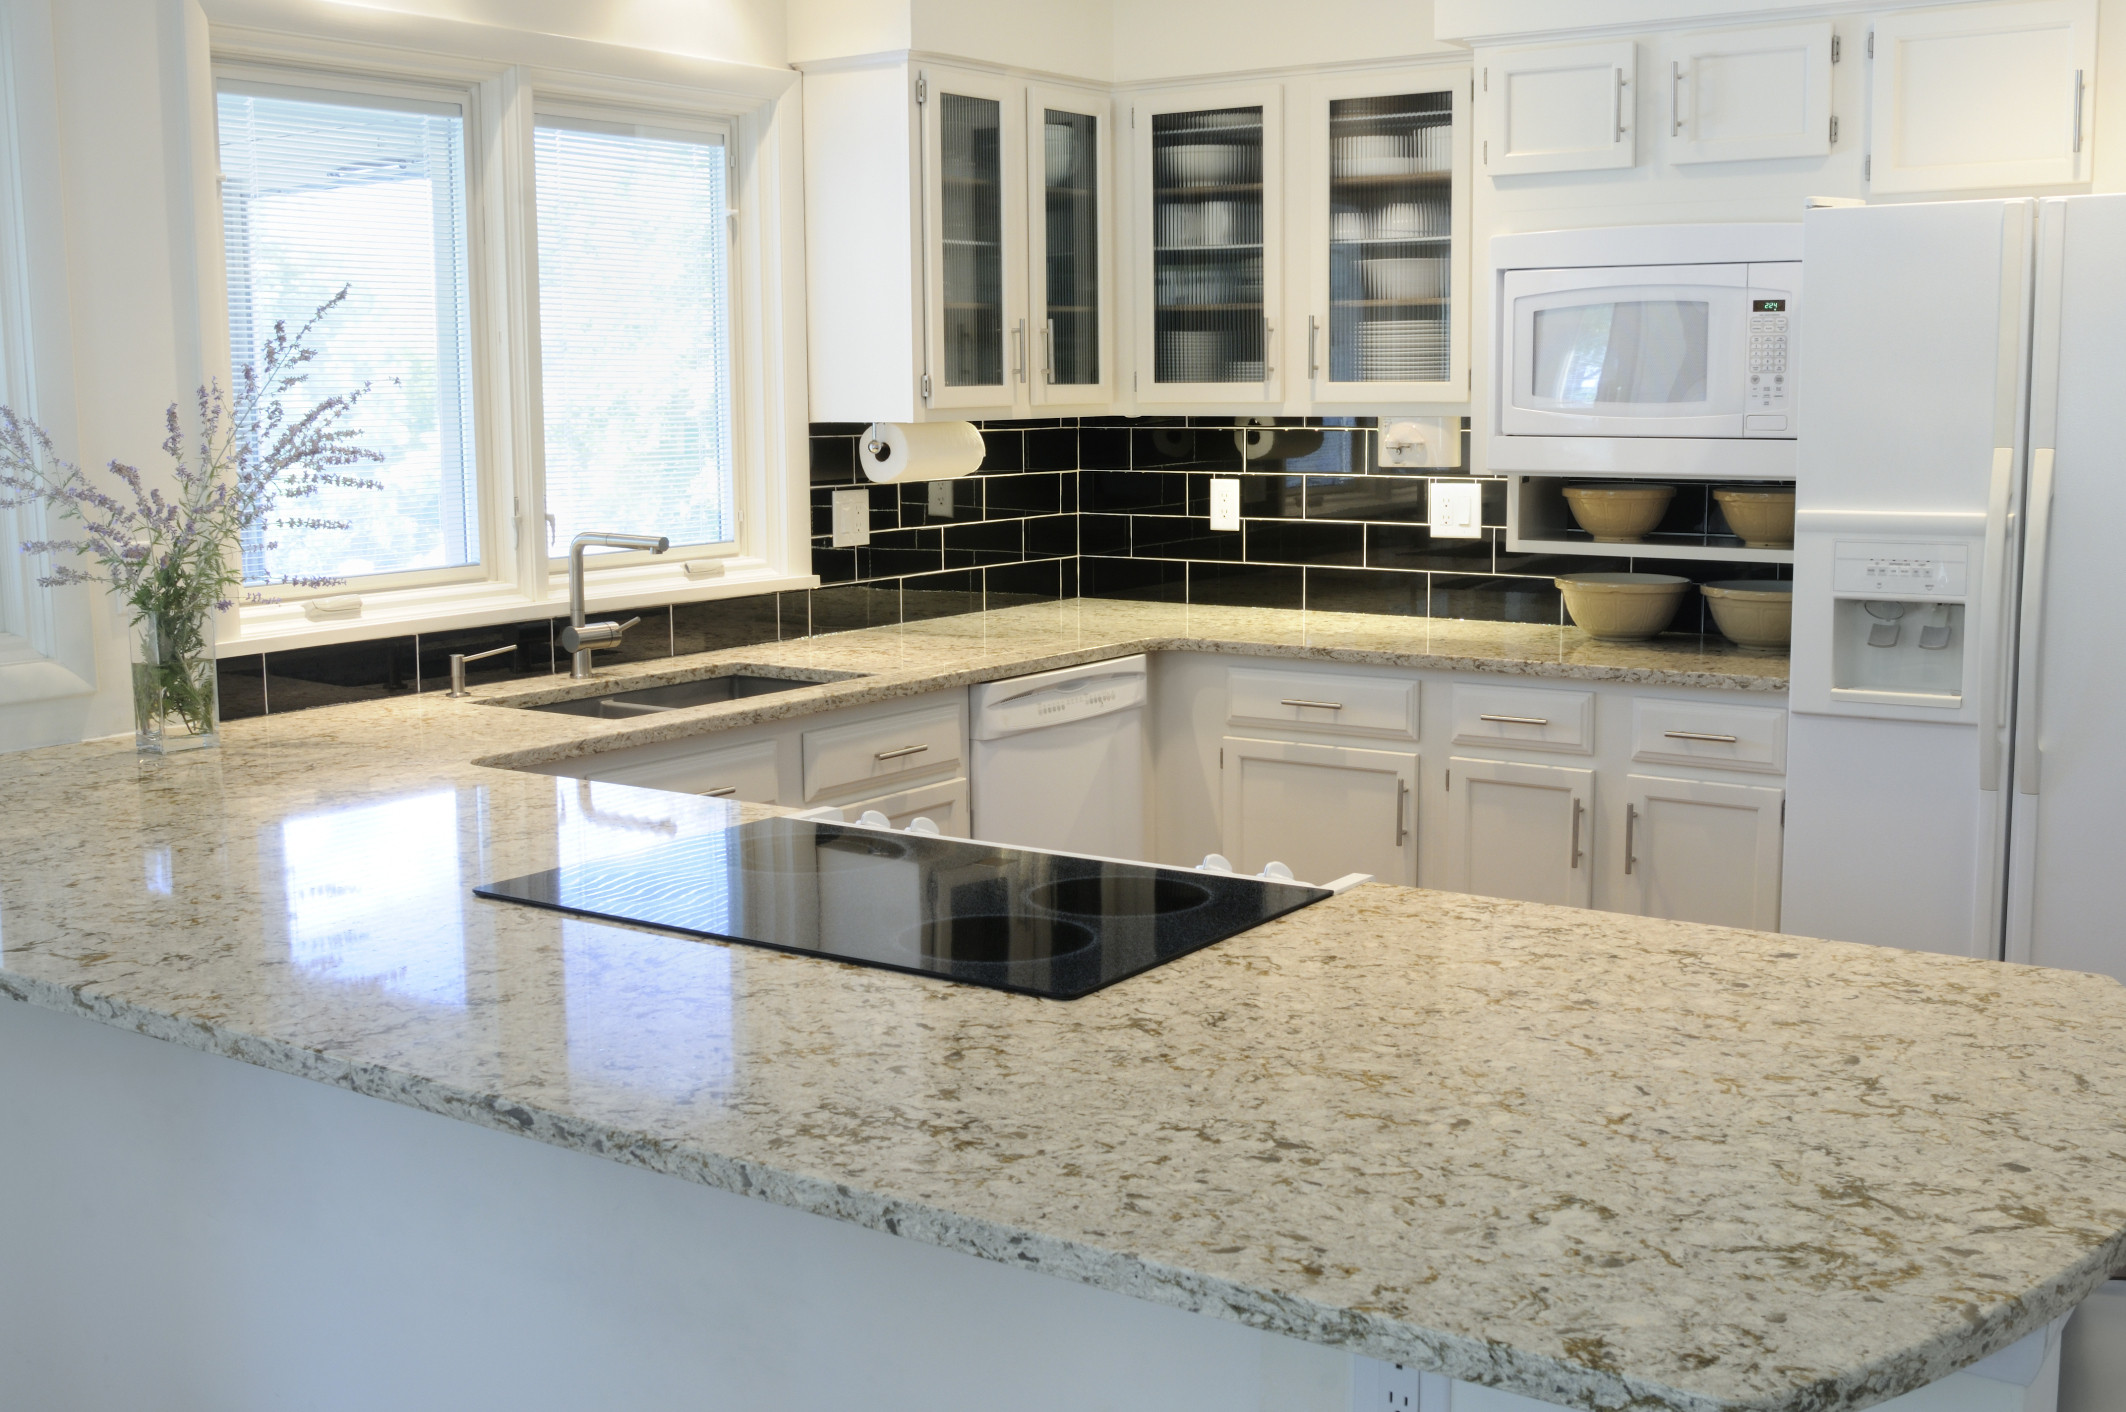 10 reasons to let go of the granite obsession already huffpost quartz countertop dailygadgetfo Images